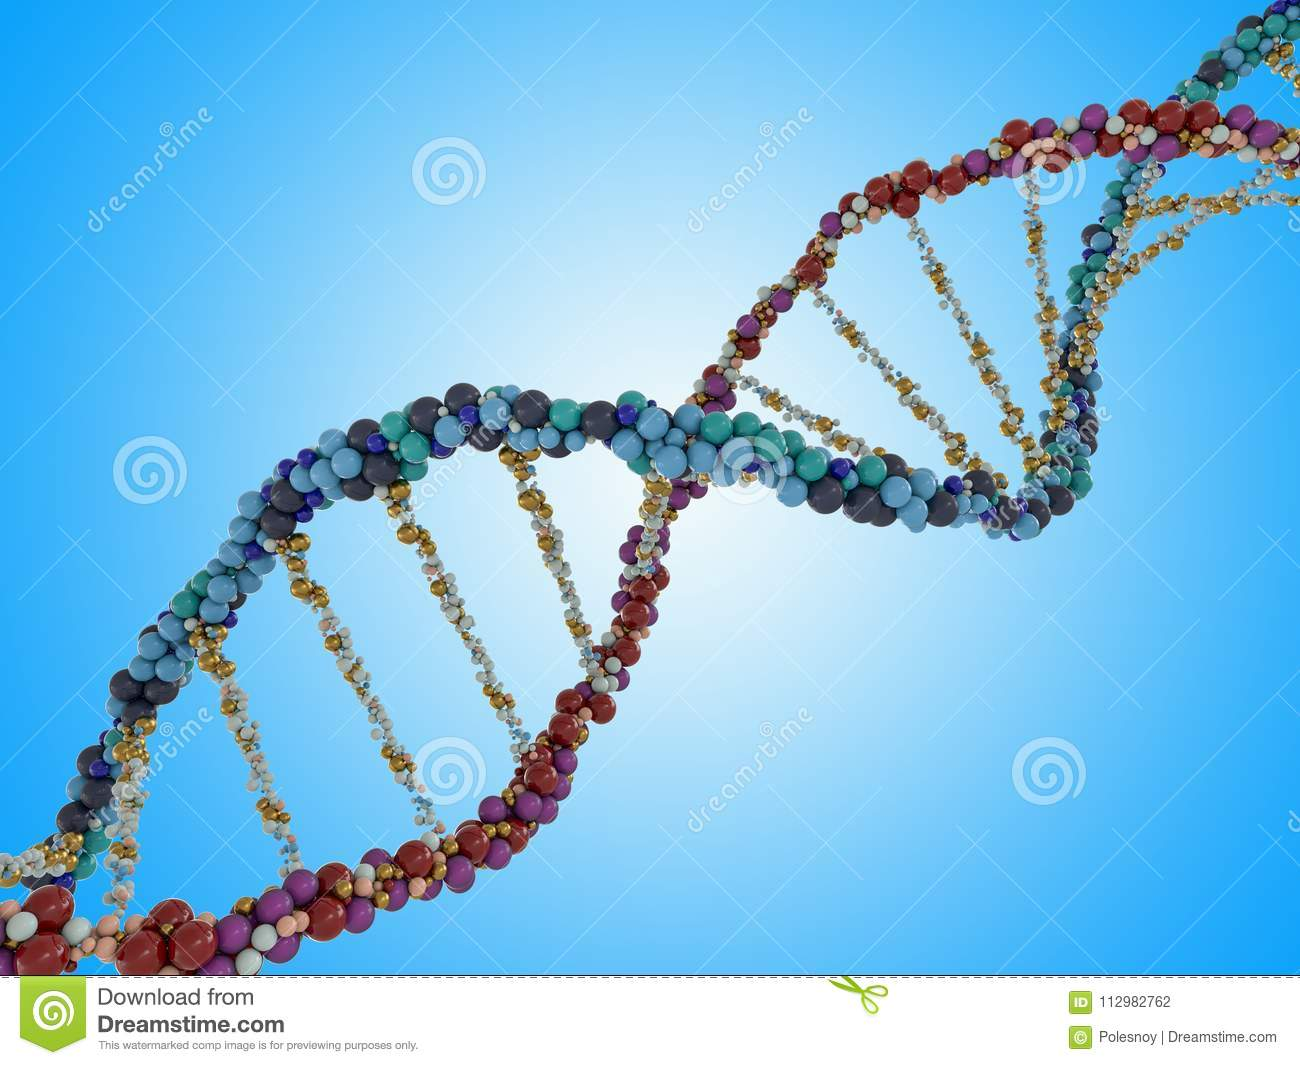 DNA chain. Abstract scientific background. 3D rendering